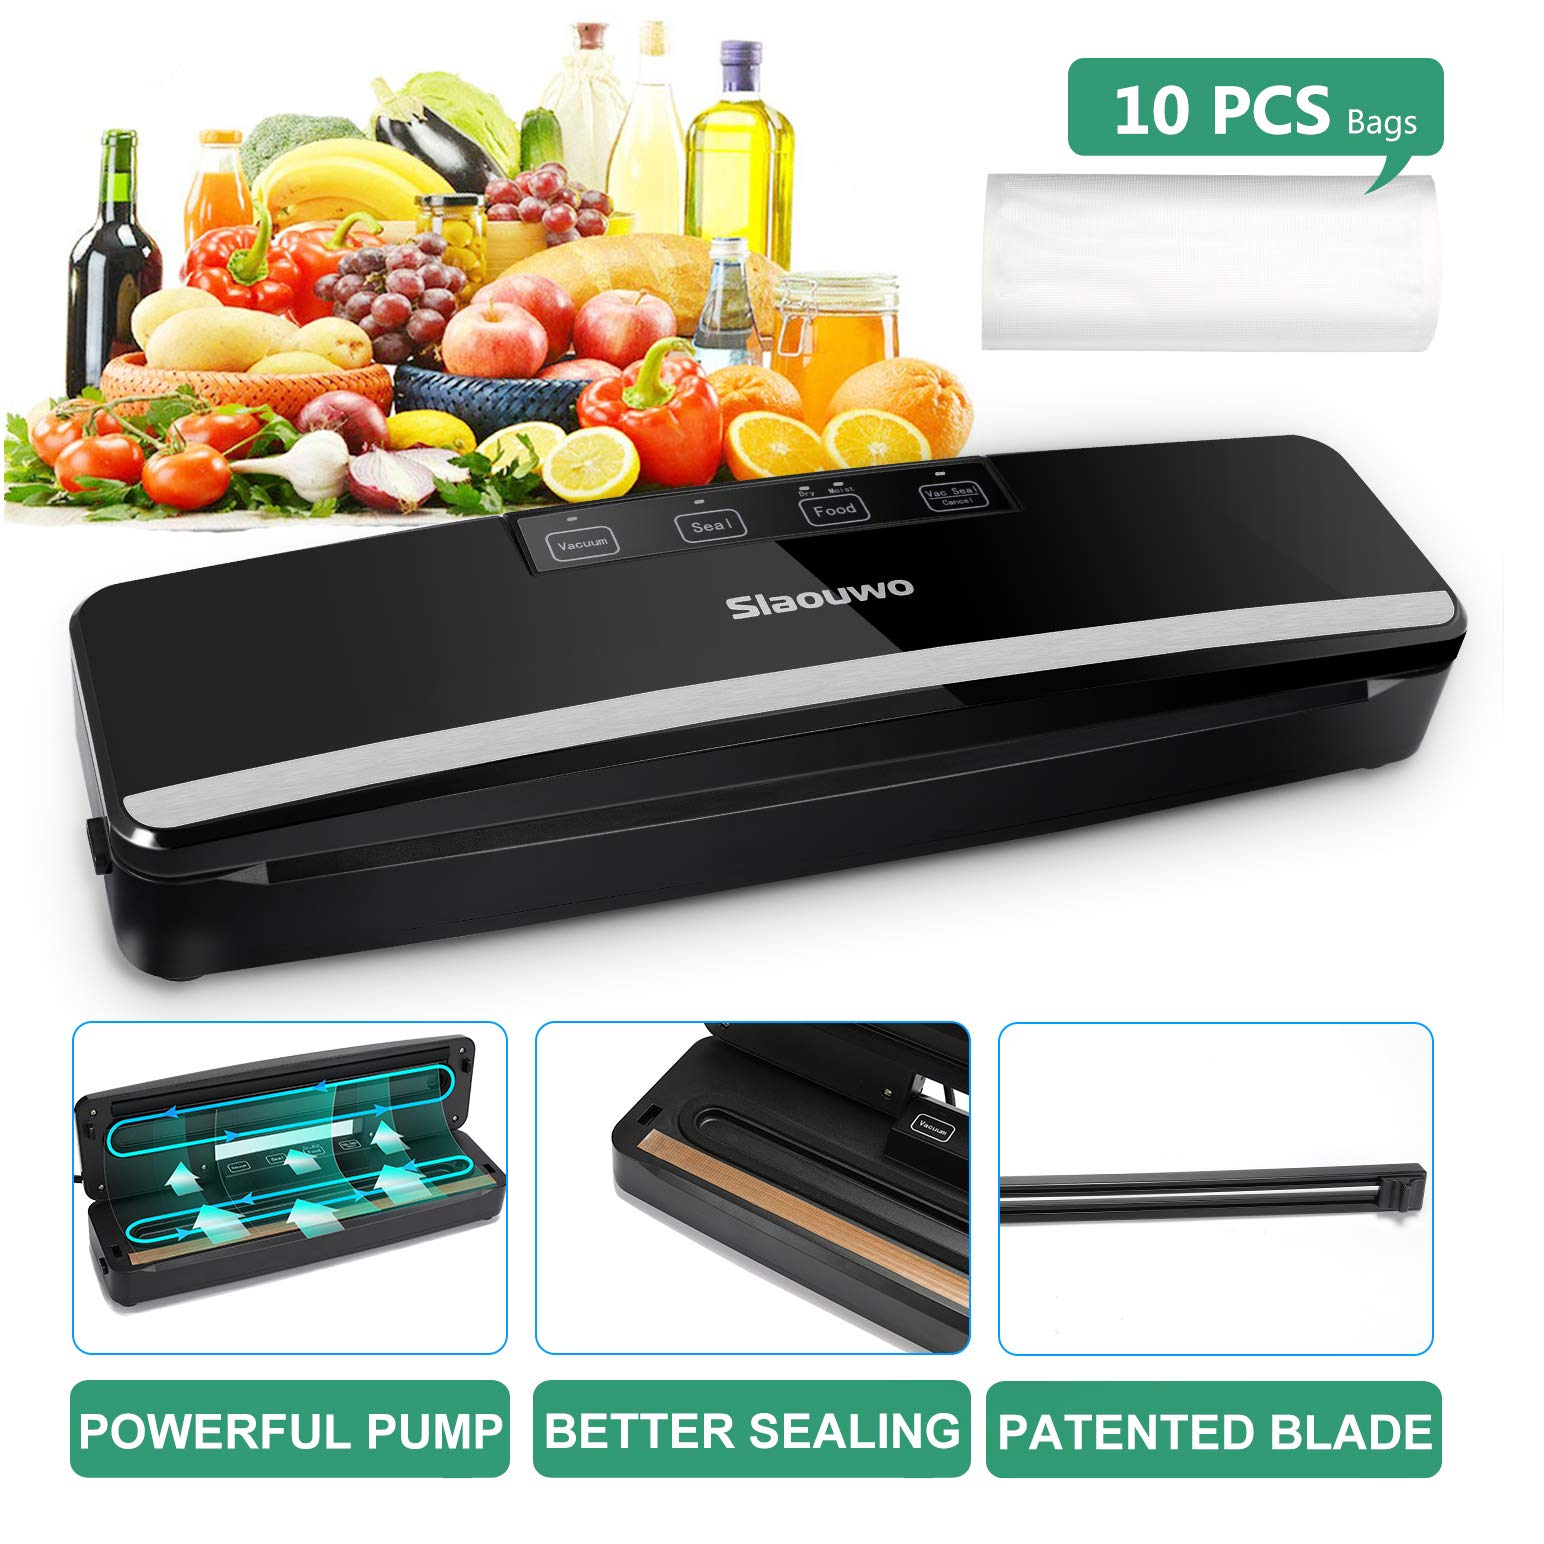 Slaouwo Vacuum Sealer Automatic Food Sealer Machine with Dry & Moist Modes, Led Indicator Light, Hose, Bags and Rolls Starter Kits Compact Design for Food Save by Slaouwo